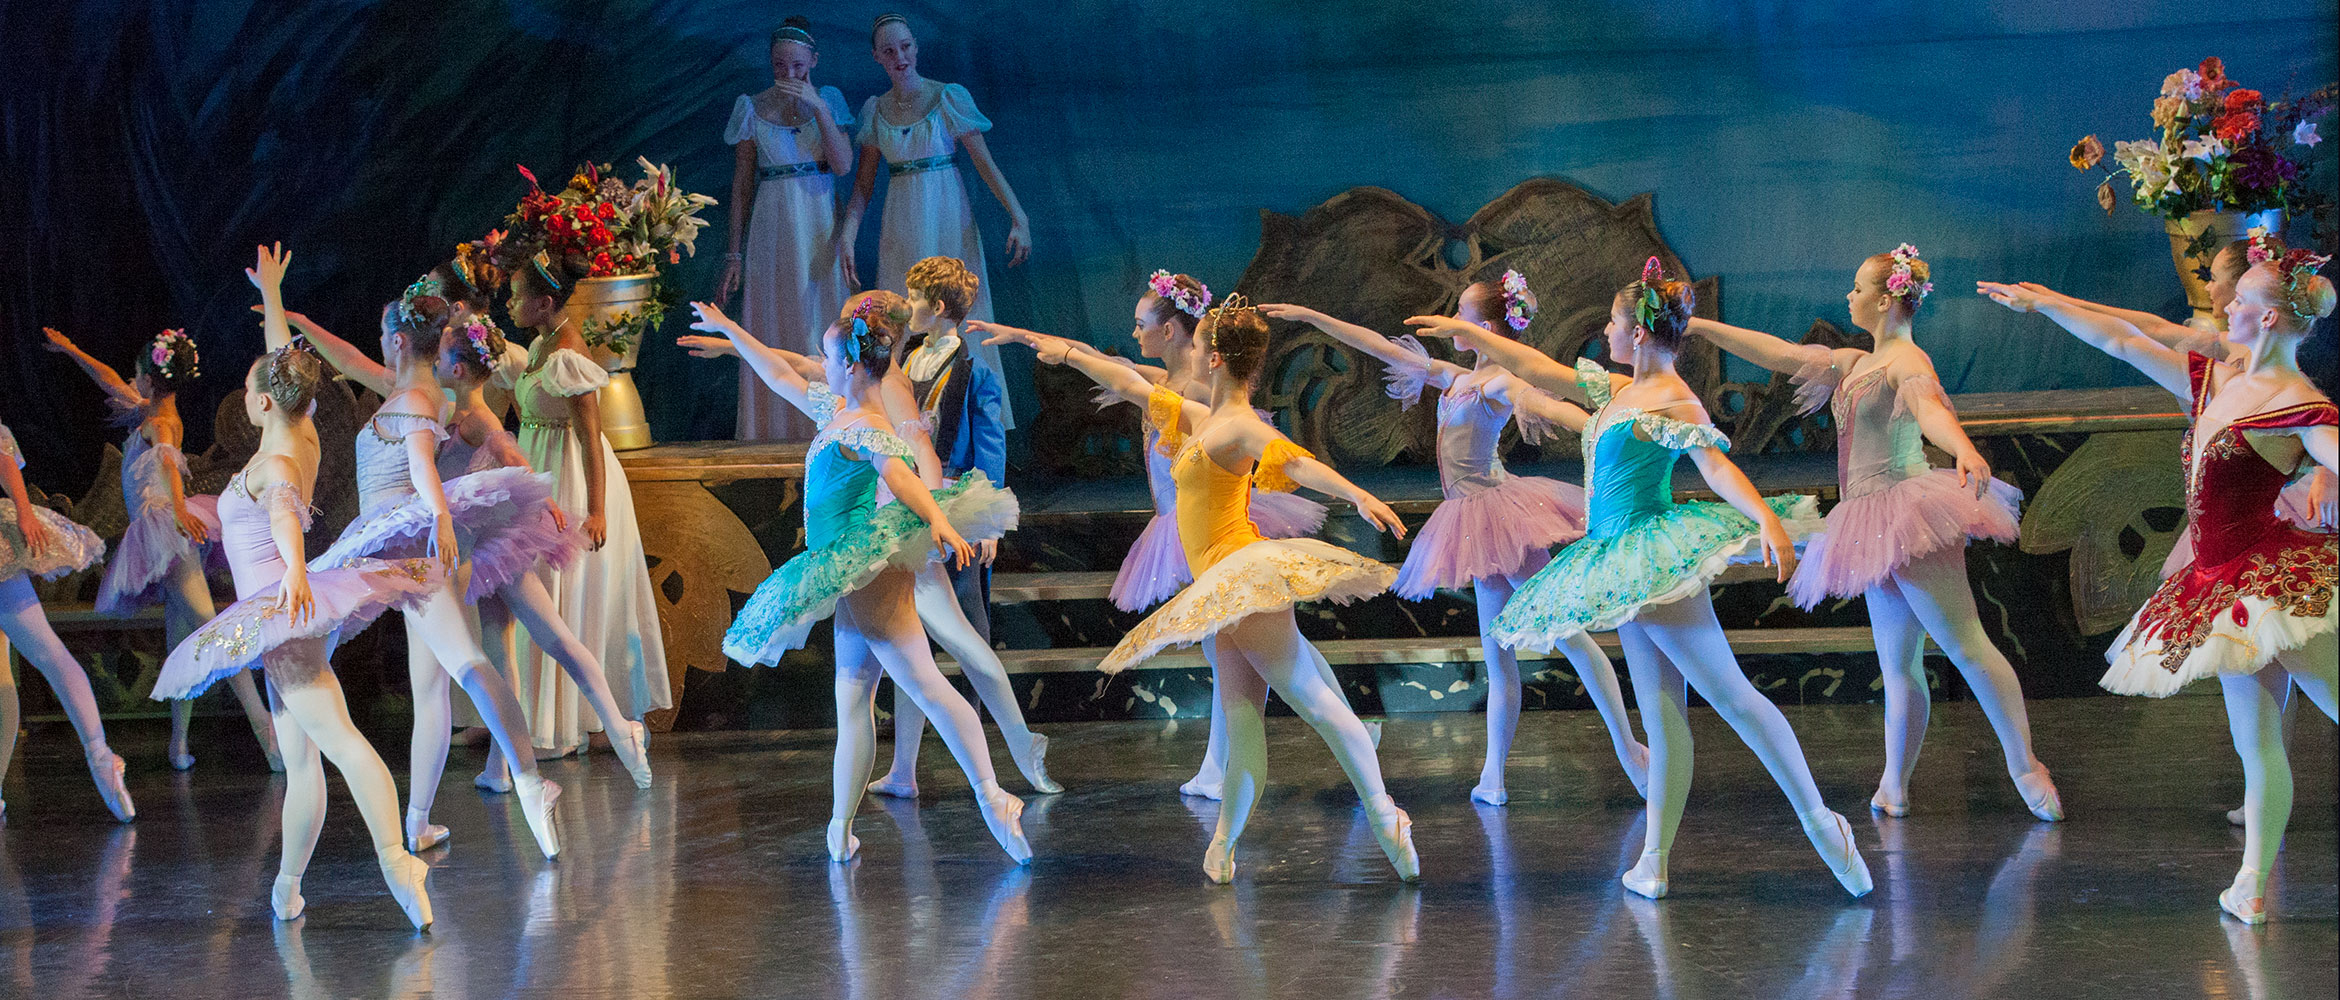 image from The Sleeping Beauty, 2017 production